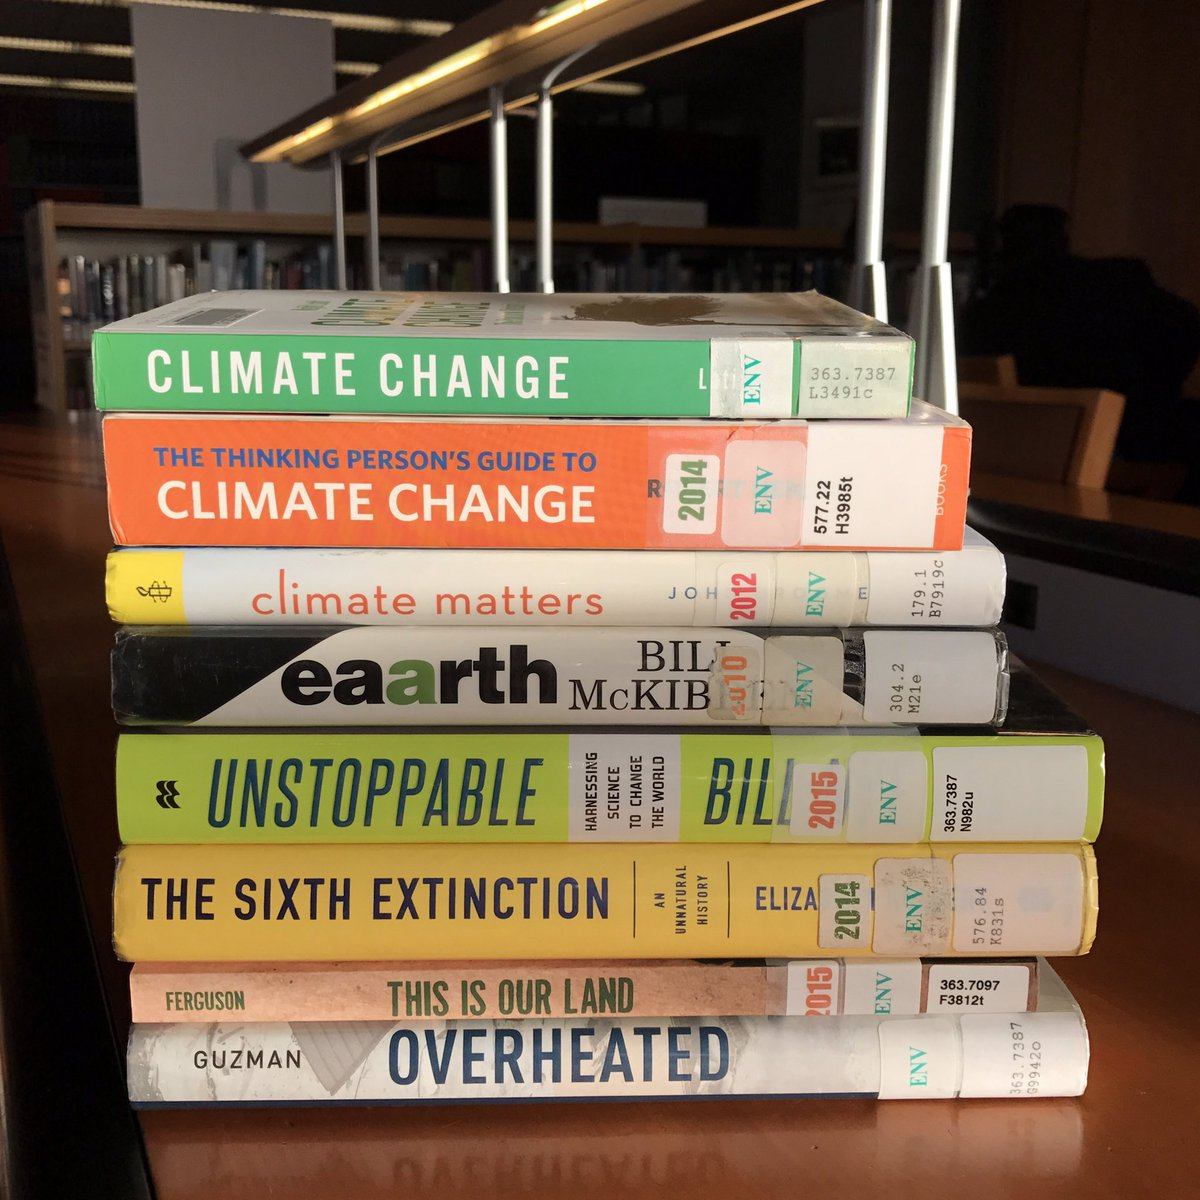 If you can't find it online, come to the Library! #climatefacts https://t.co/oxWmEKvnmS